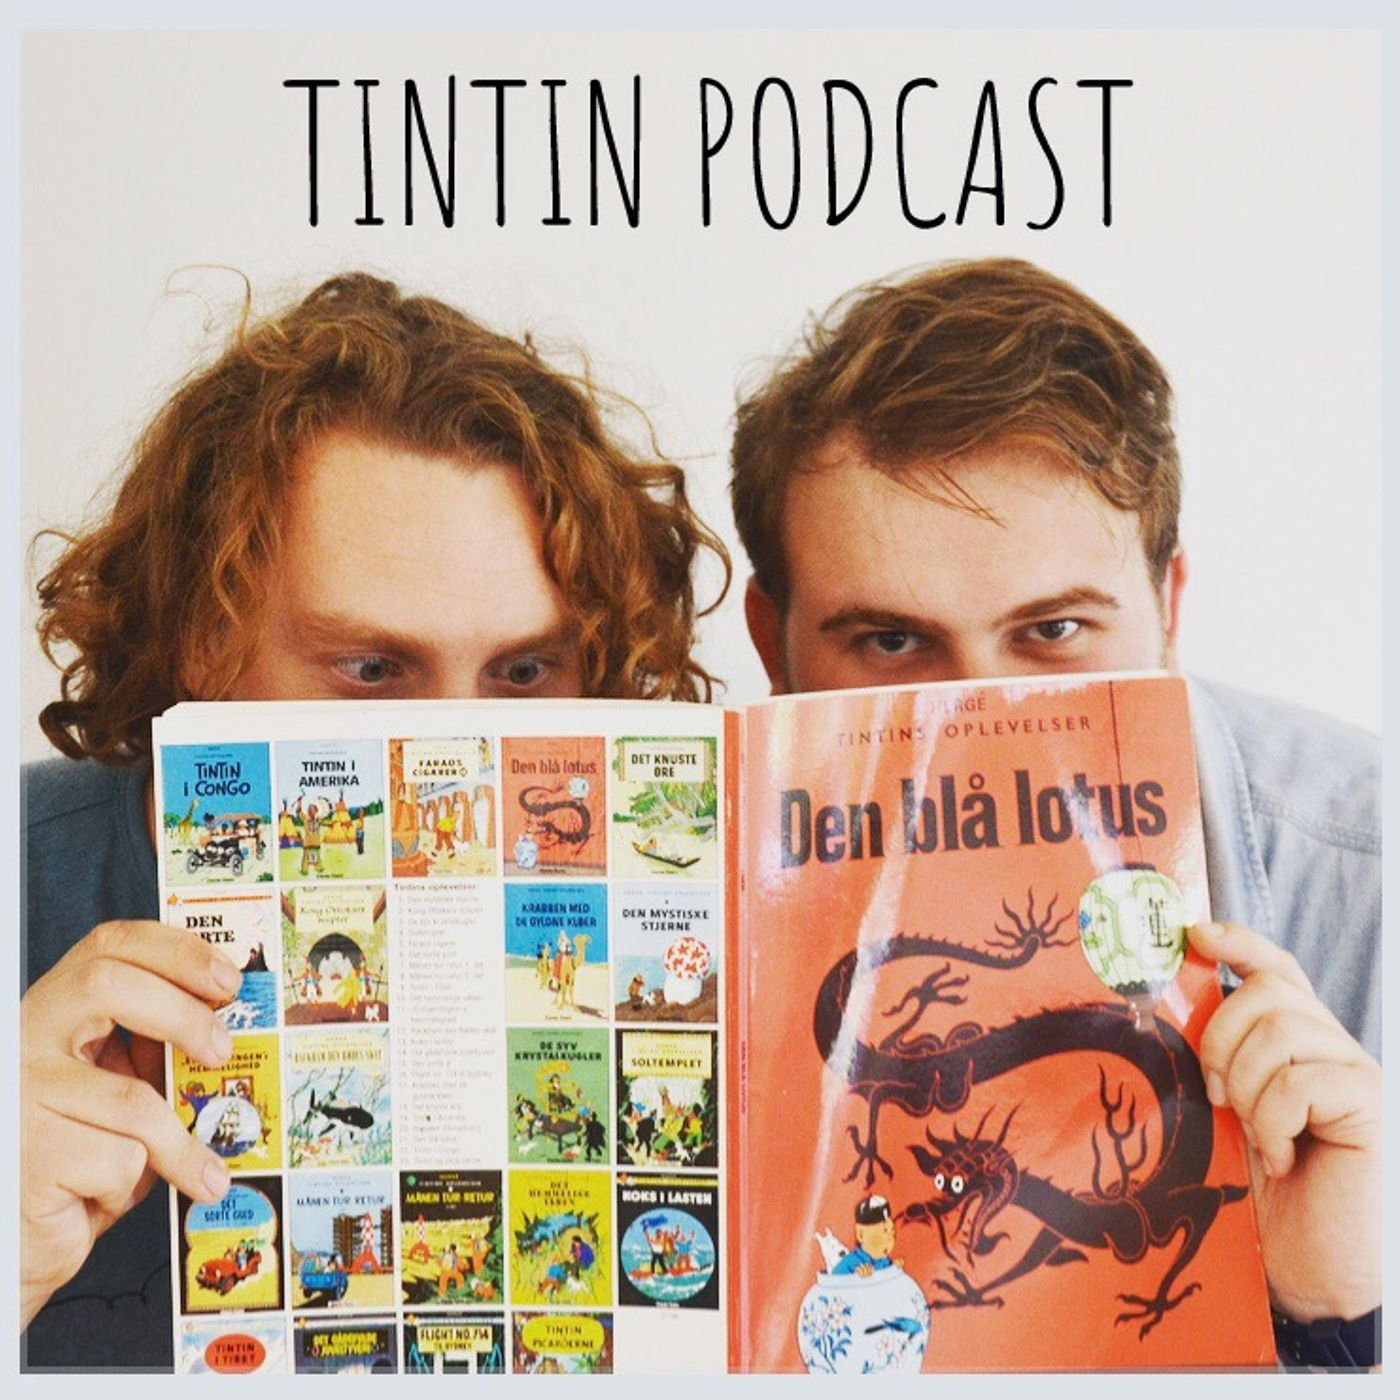 Tintin podcast